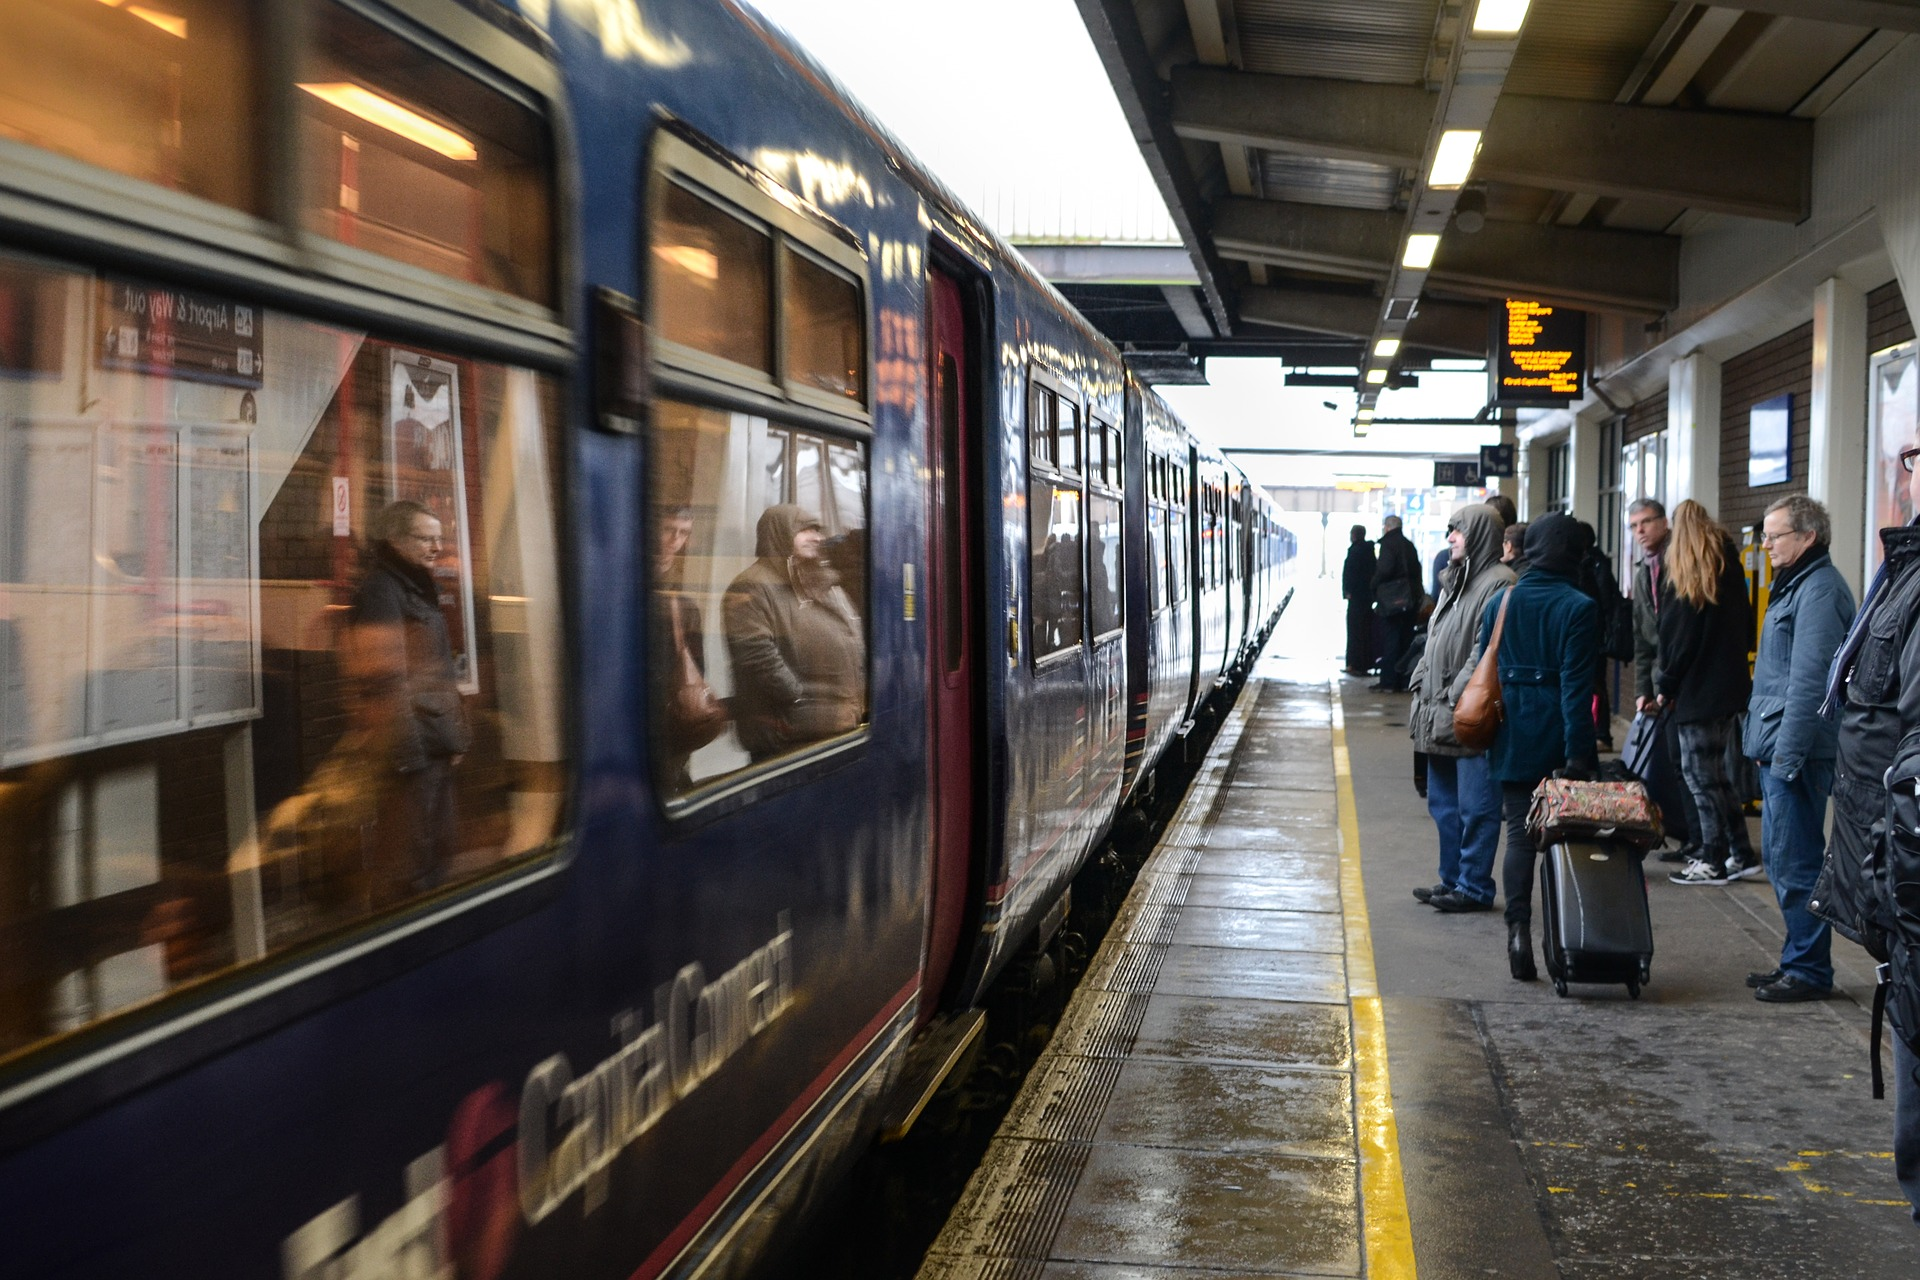 £20m Fund to Improve Accessibility of Rail Stations